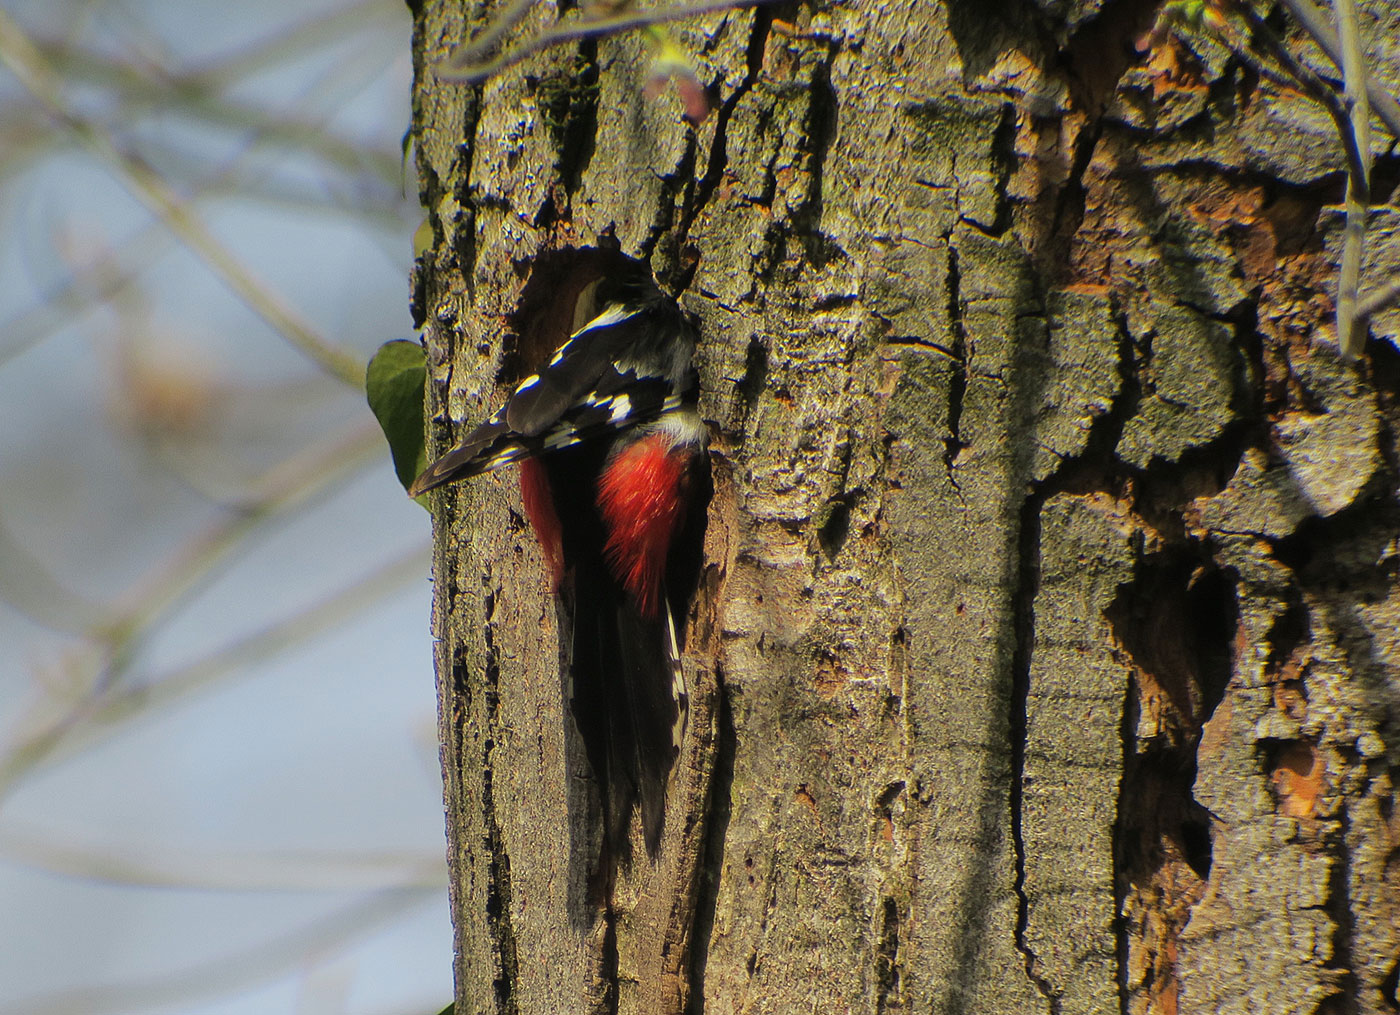 05_buntspecht_great-spotted-woodpecker_ostfriedhof_2019-04-06_8584